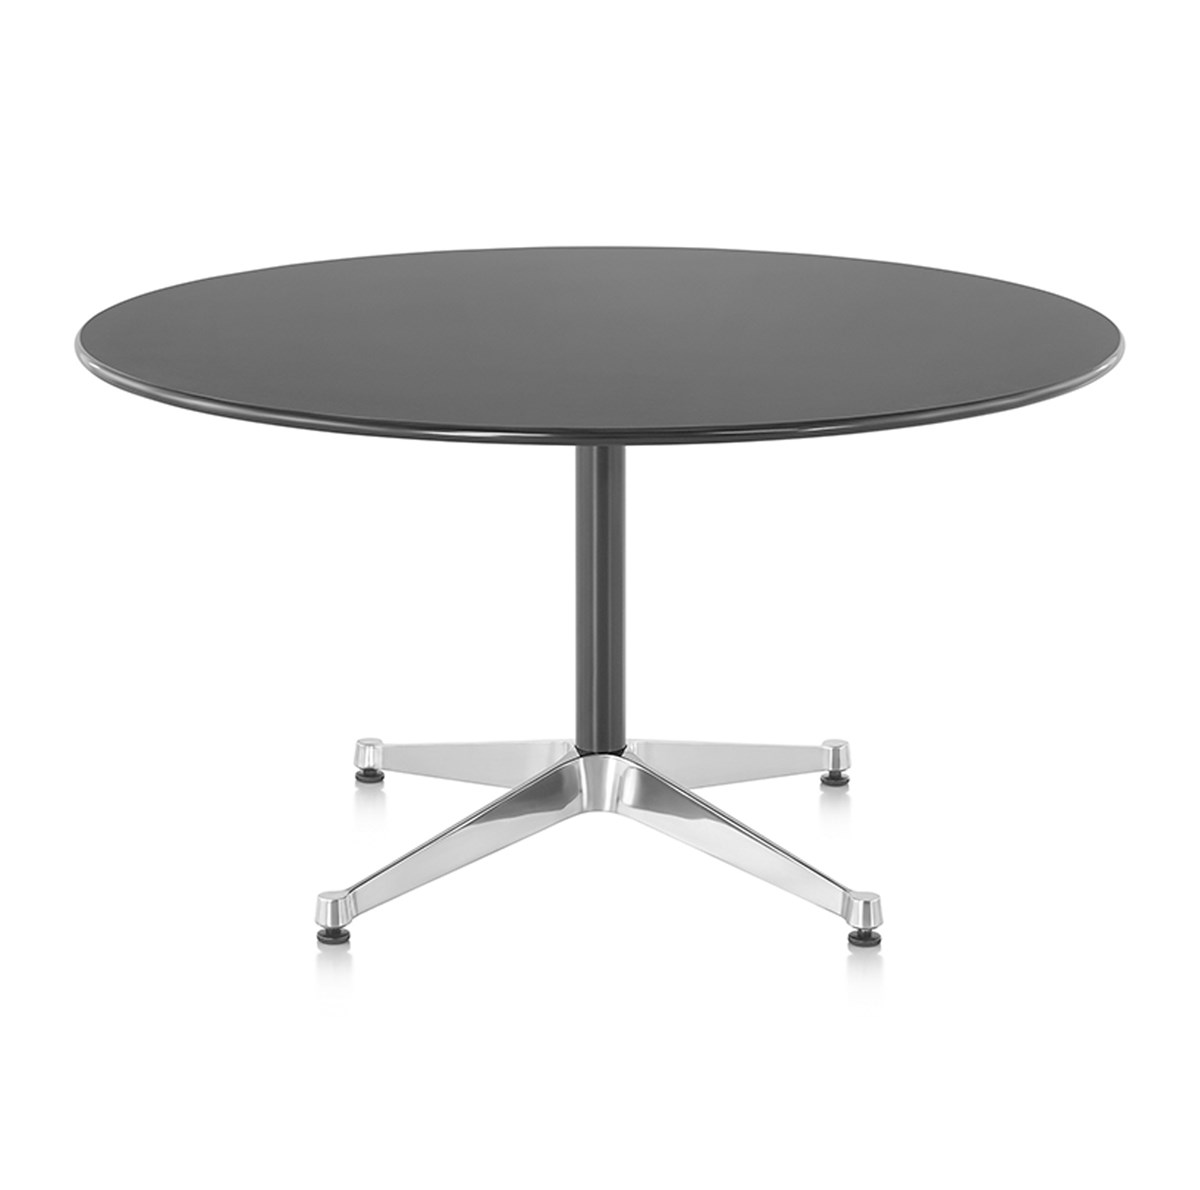 Herman-Miller-Charles-&-Ray-Eames-Eames®-Tables-Matisse-1